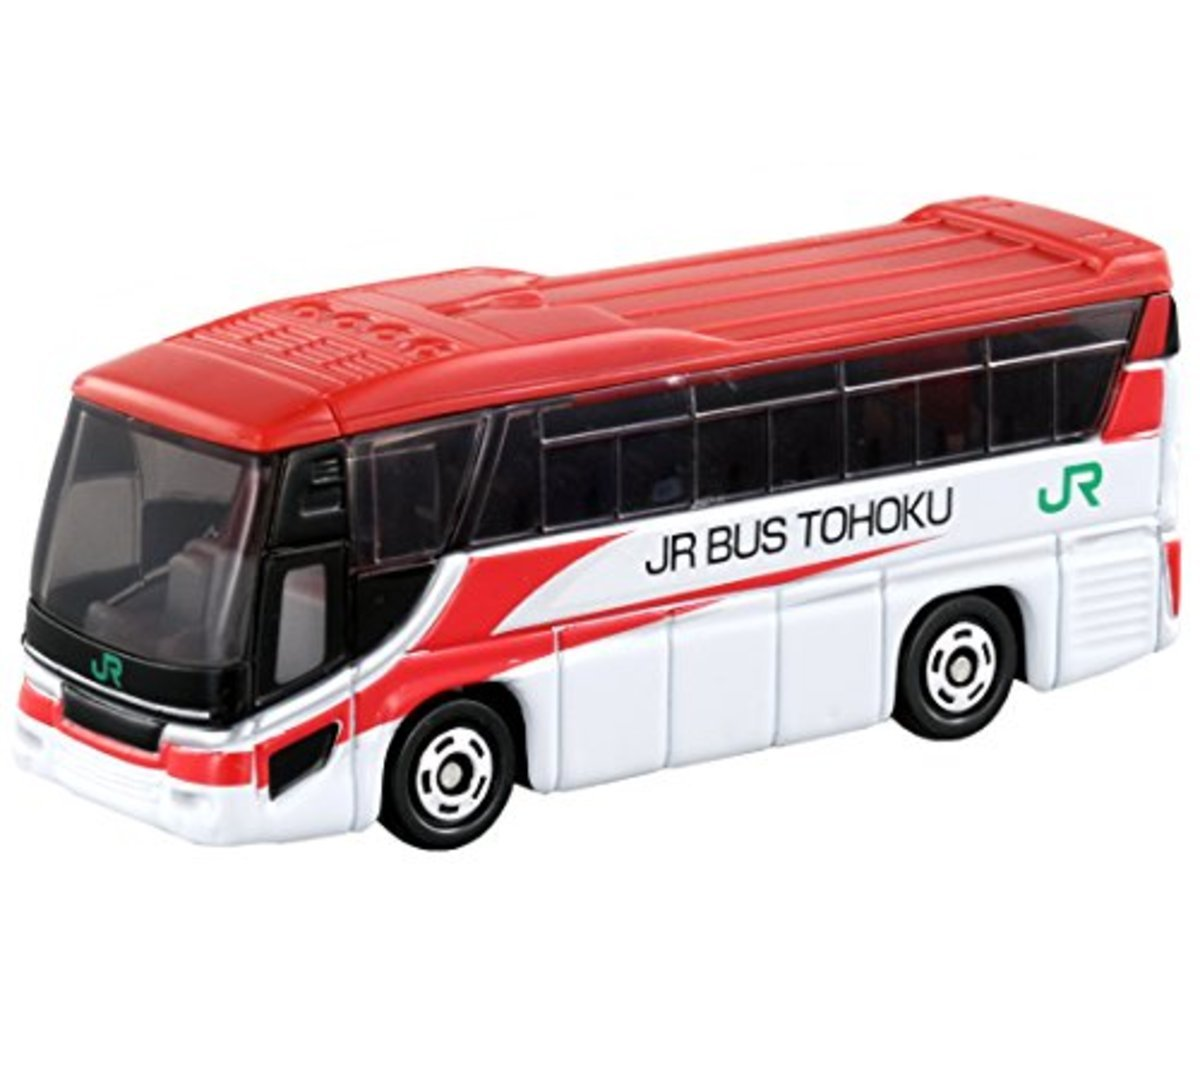 72 Hino S'Elega JR bus Tohoku Komachi Colour 1/156